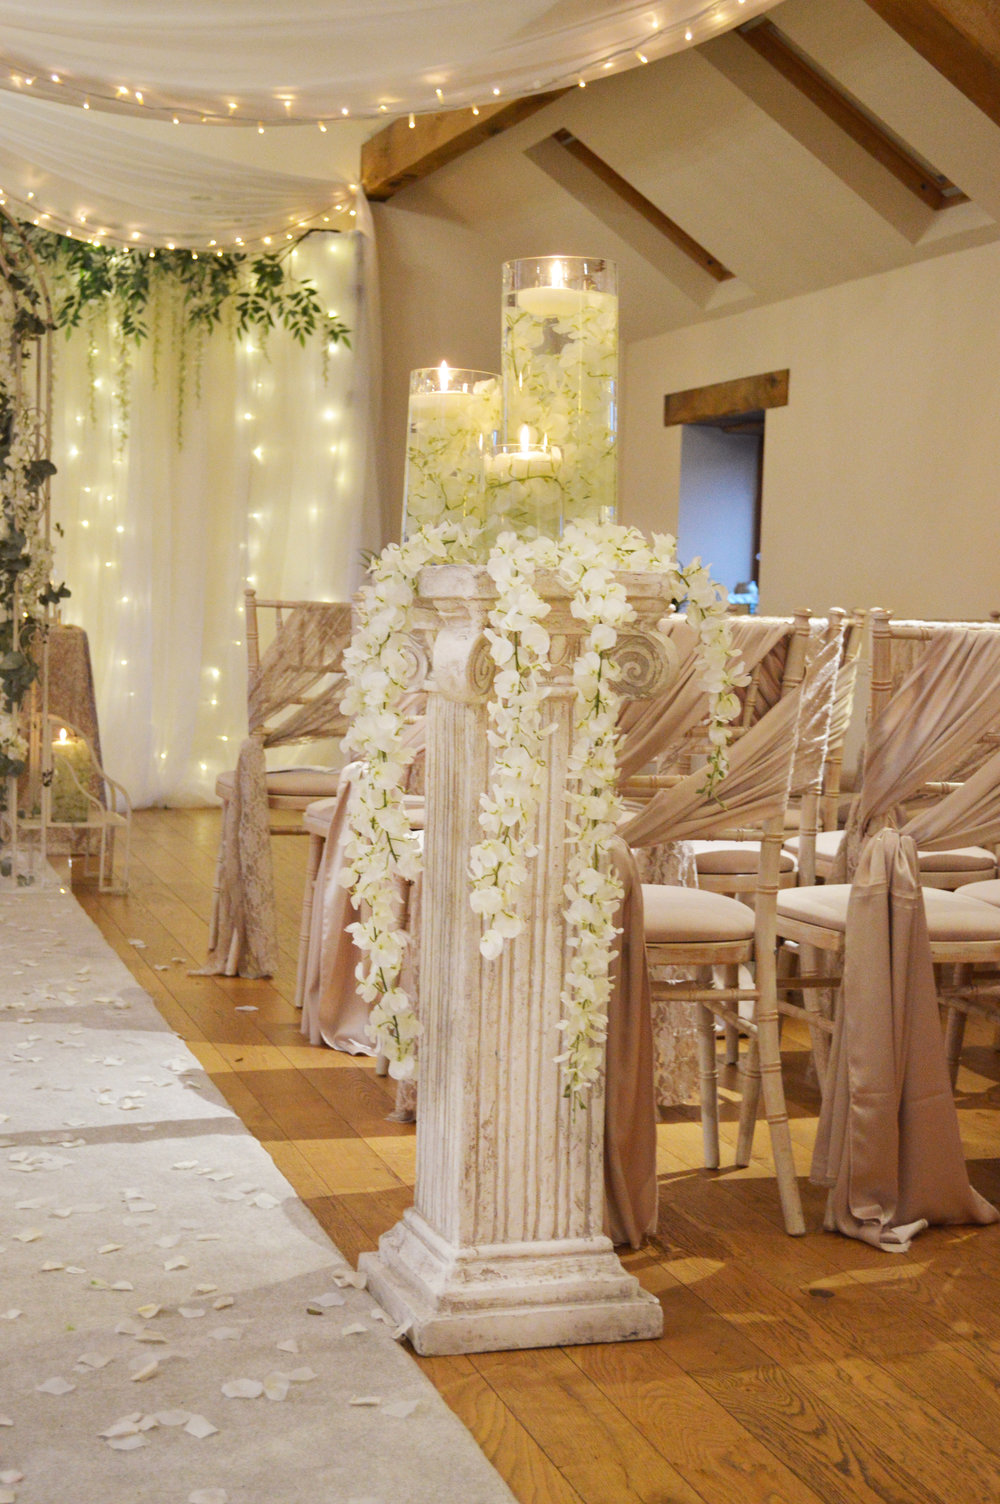 Pillars with floating candles and hanging flowers